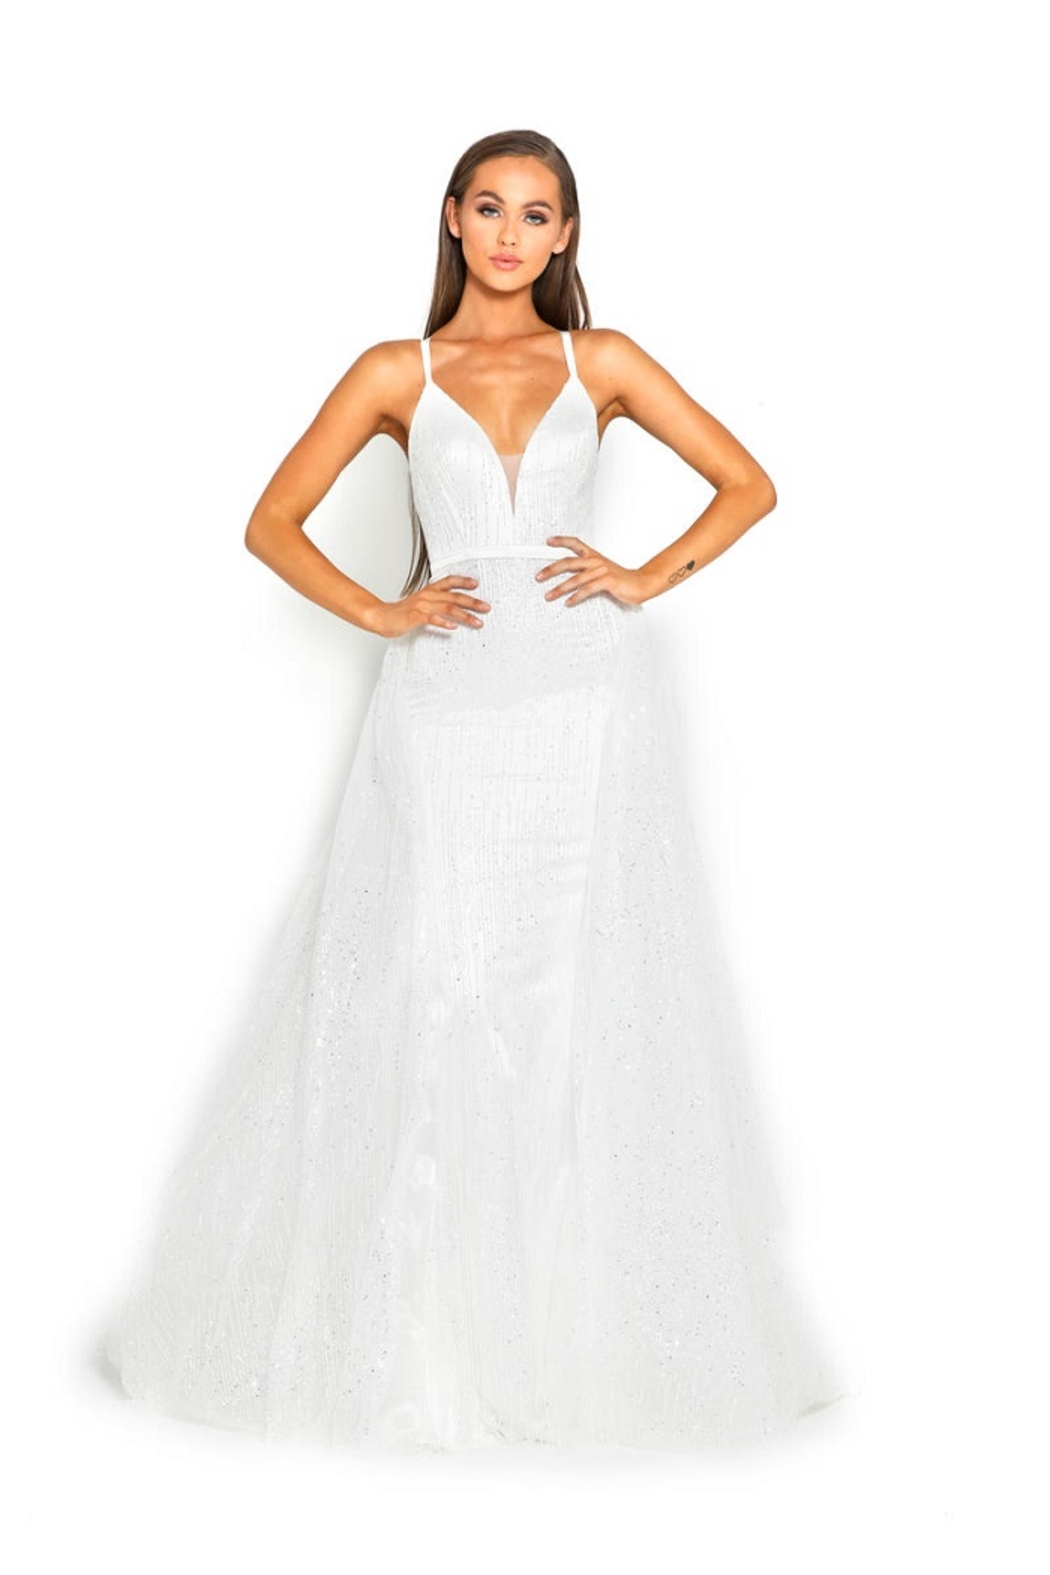 PORTIA AND SCARLETT White Glitter Fit & Flare Bridal Gown With Detachable Train - Main Image